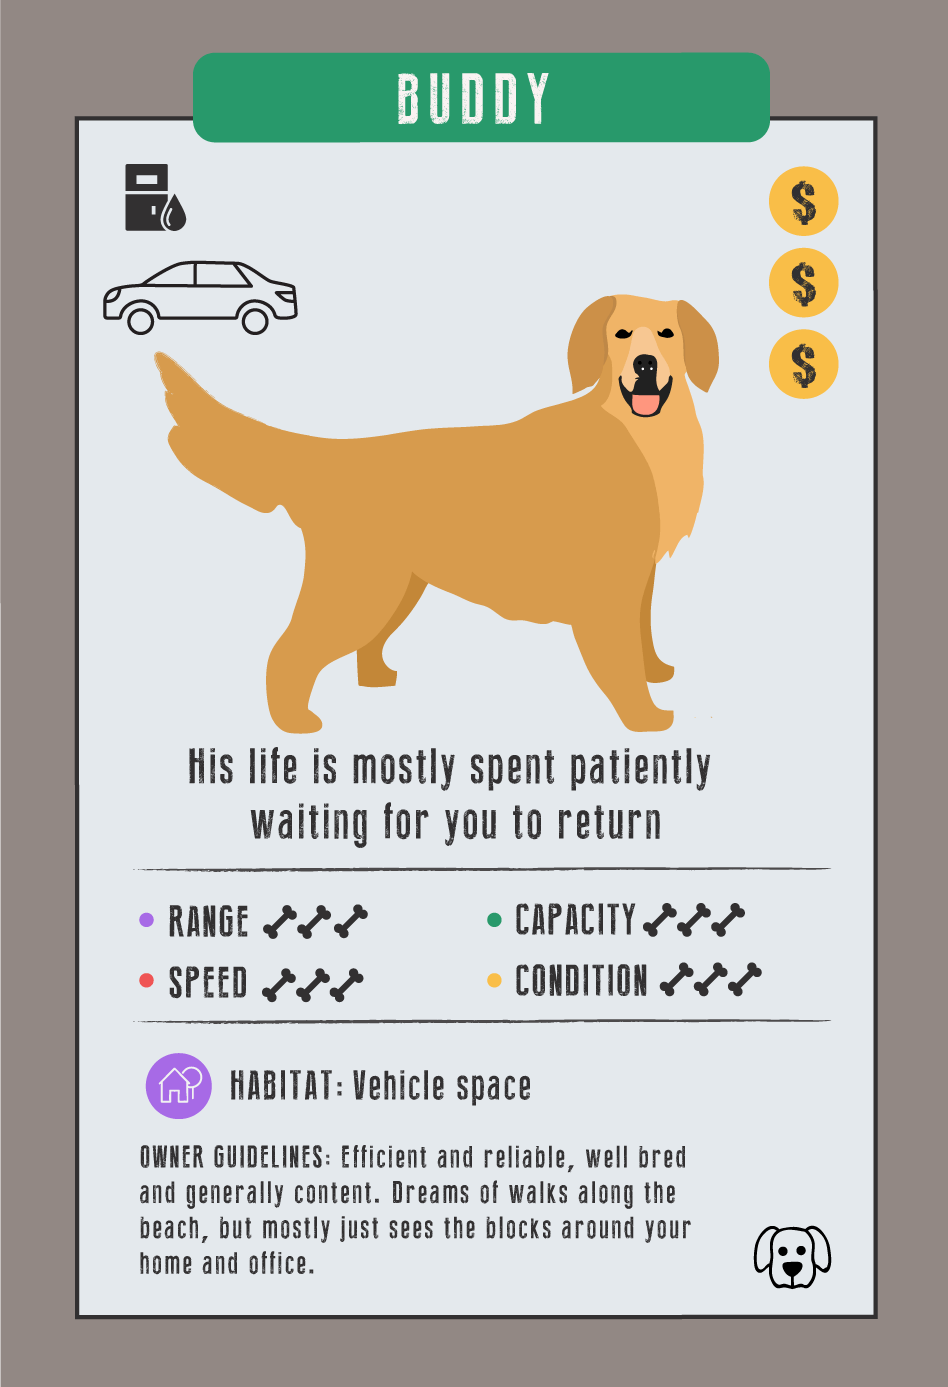 """Buddy DOG card, """"His life is spent patiently waiting for you to return""""; he represents a Toyota Corolla; """"Owner guidelines: Efficient and reliable, well bred and generally content. Dreams of walks along the beach, but mostly just sees the blocks around your home and office."""""""